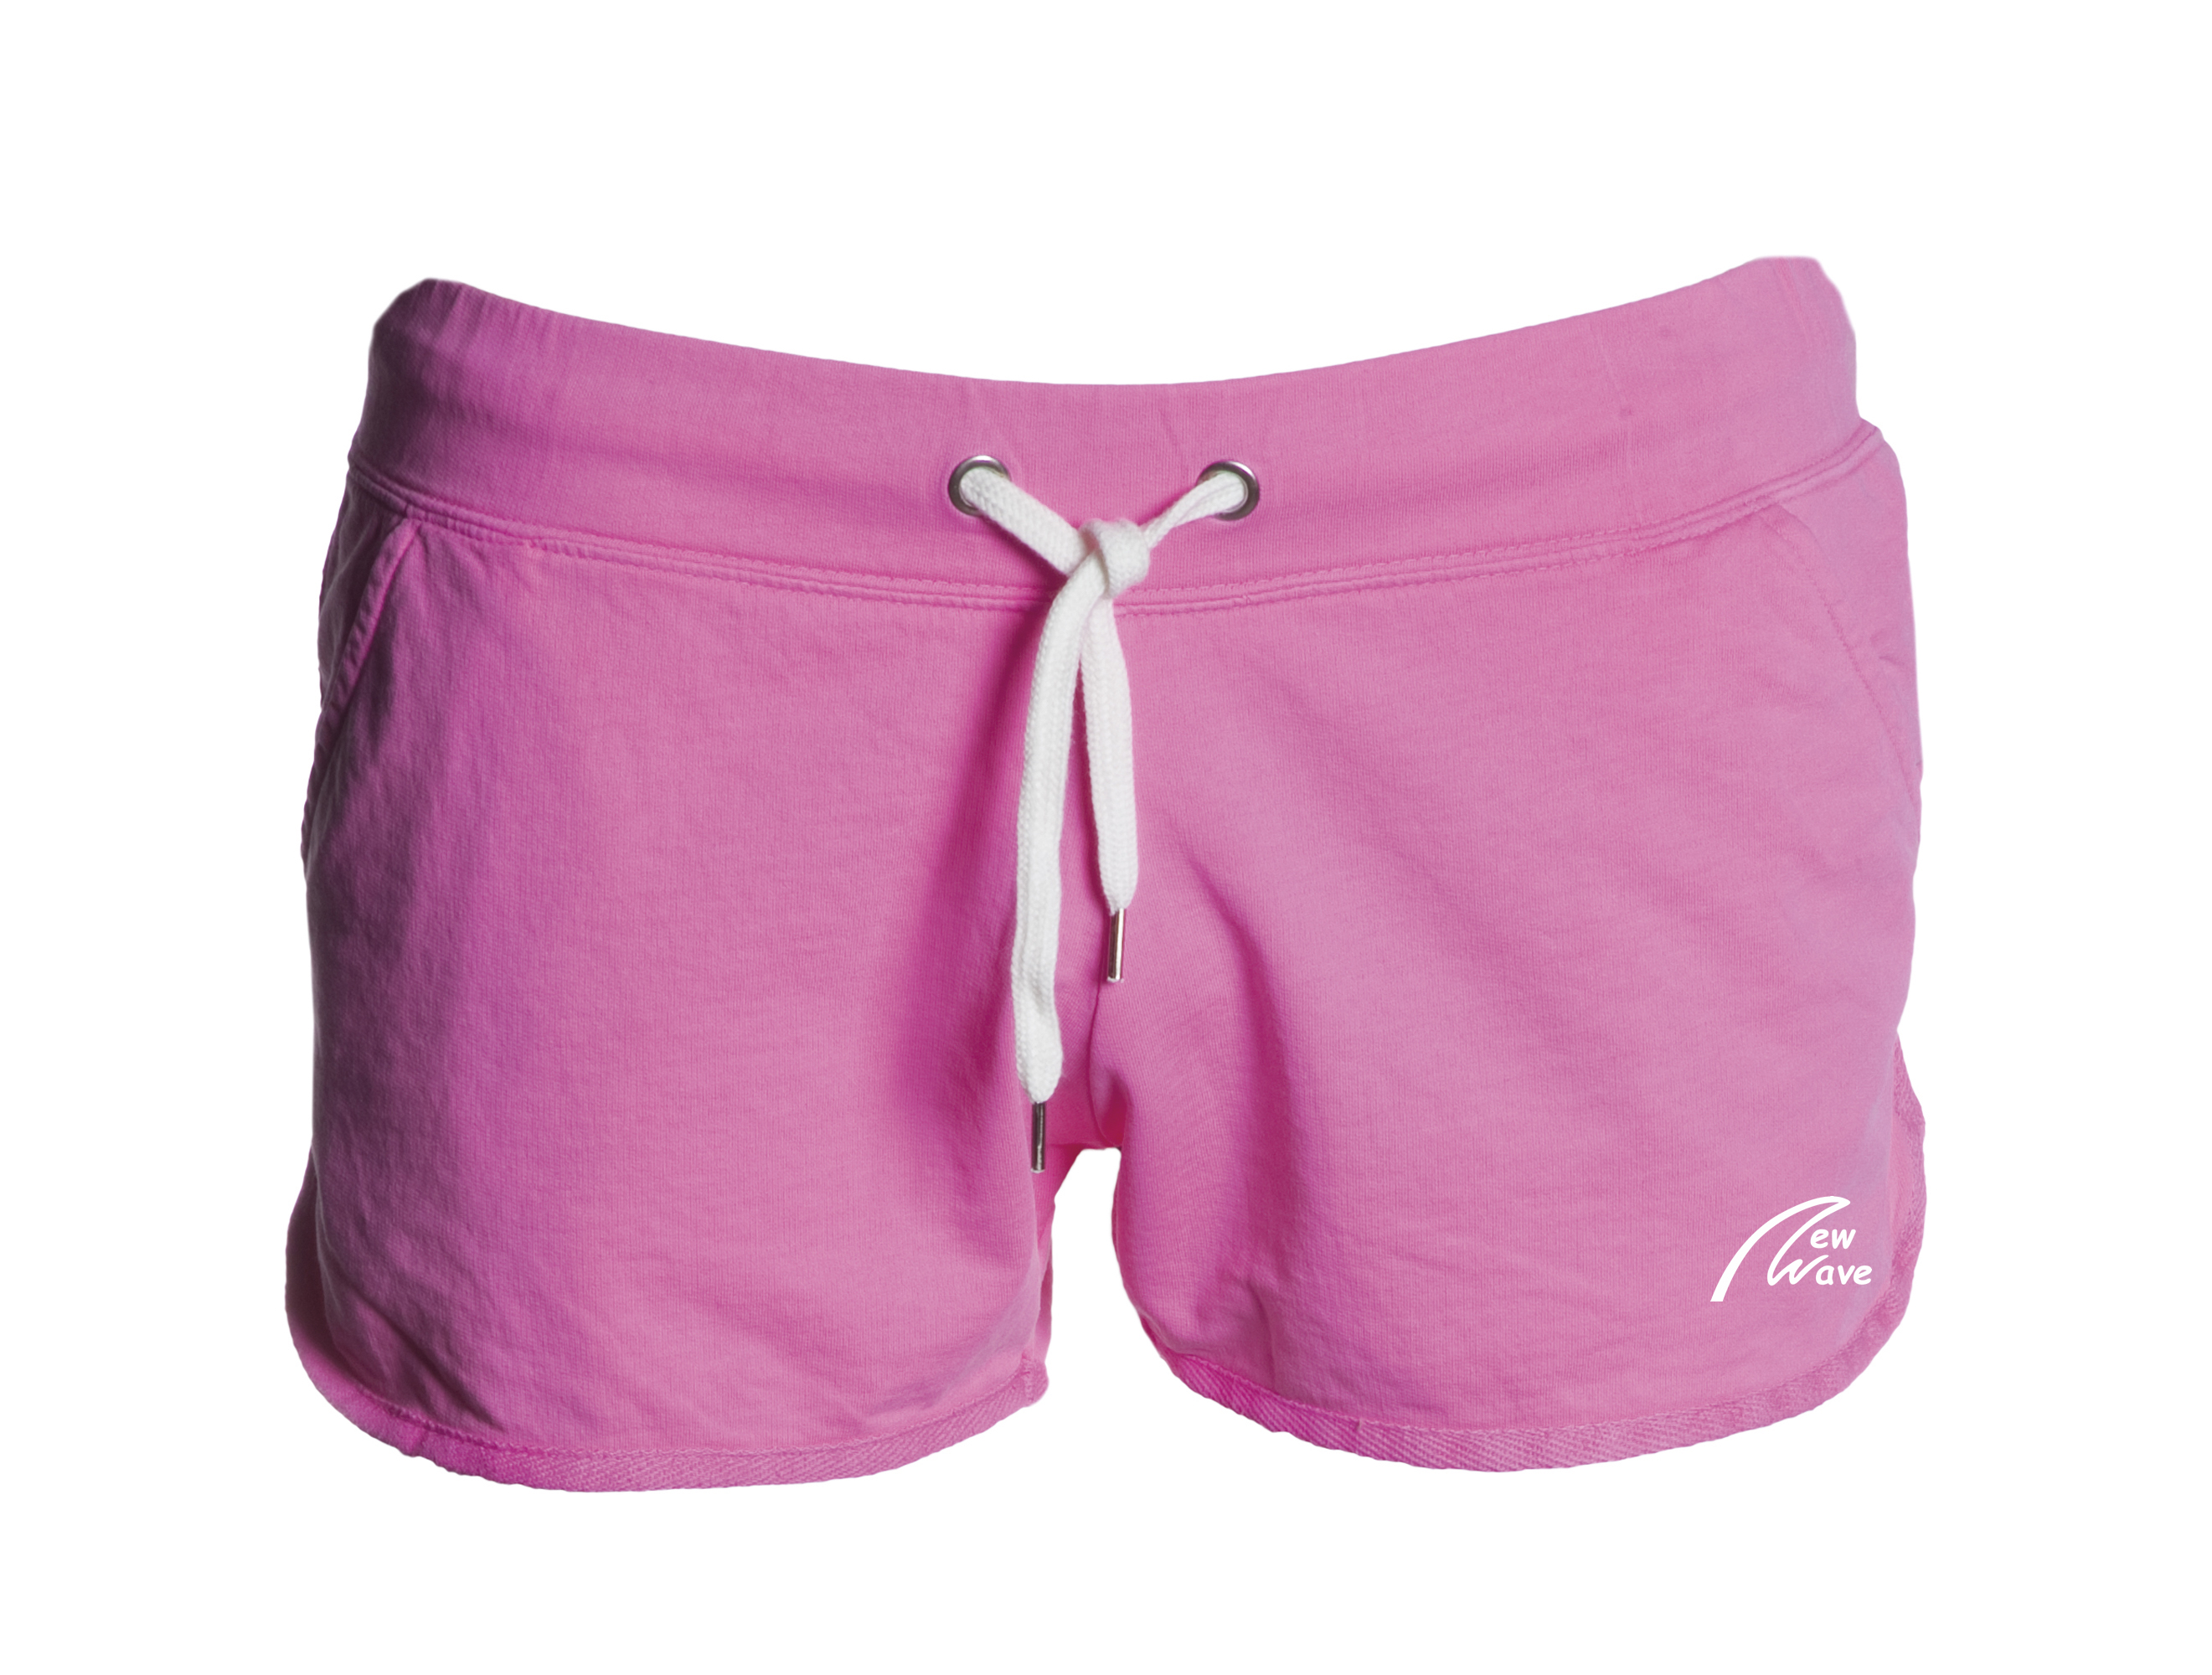 Retro Sport Shorts - Lady pink